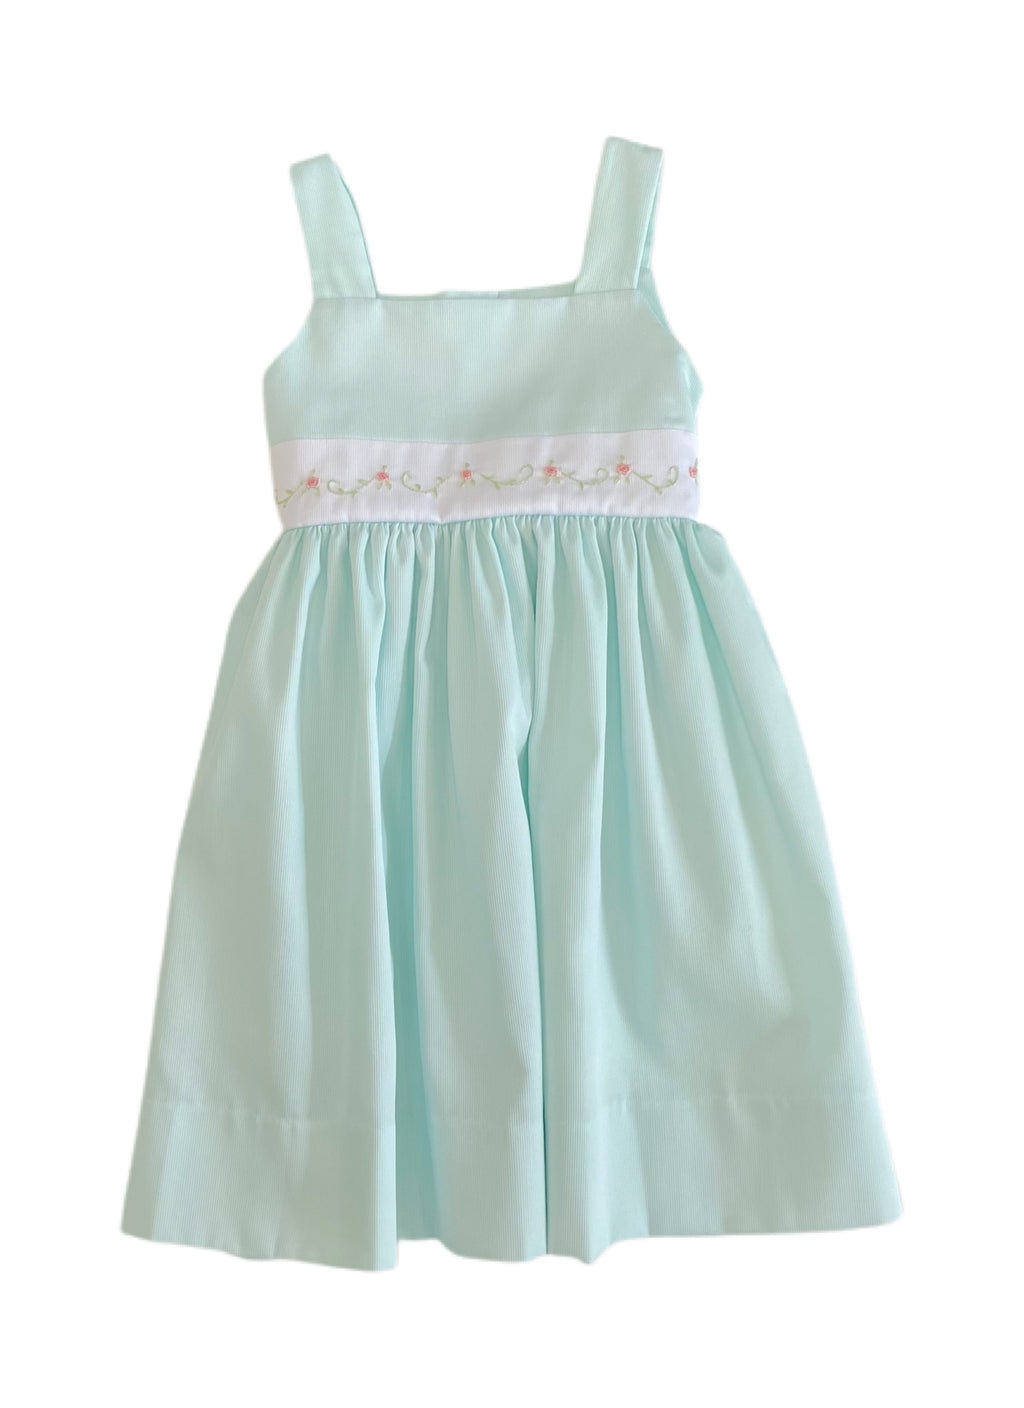 Lulu Bebe Jackie Mint Embroidered Waist Dress